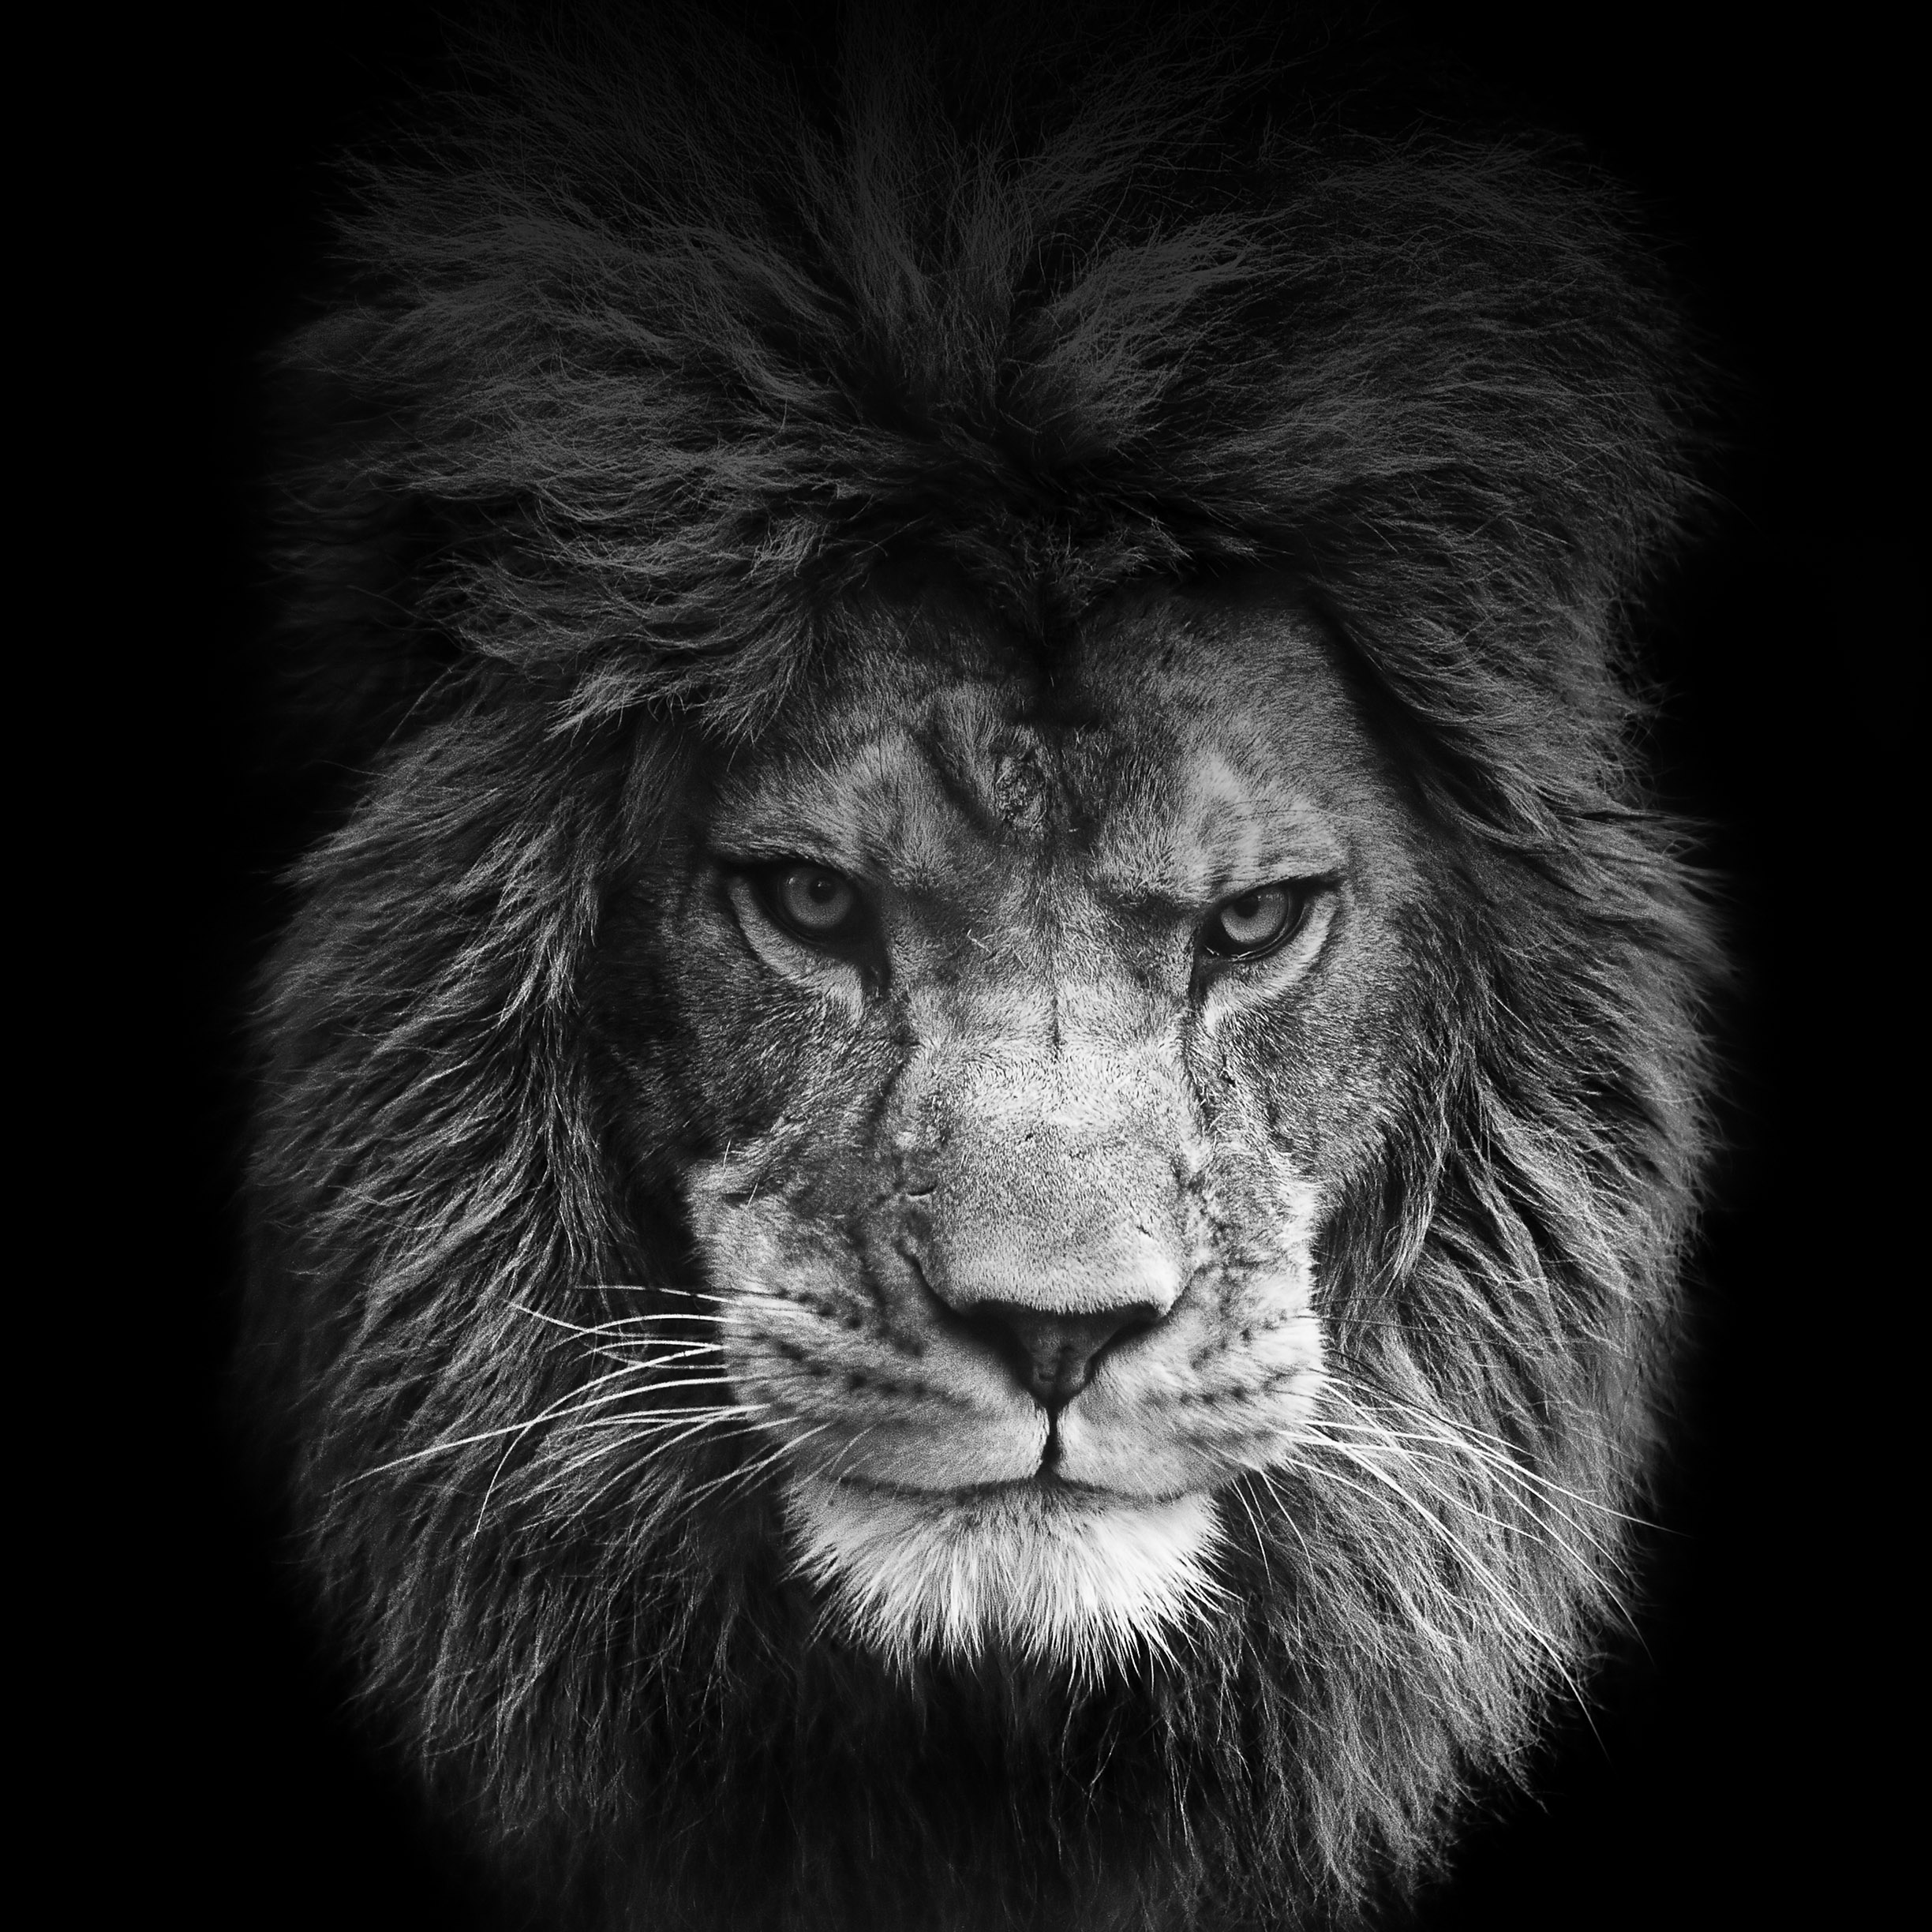 Lion wallpapers for iPhone and iPad 2448x2448